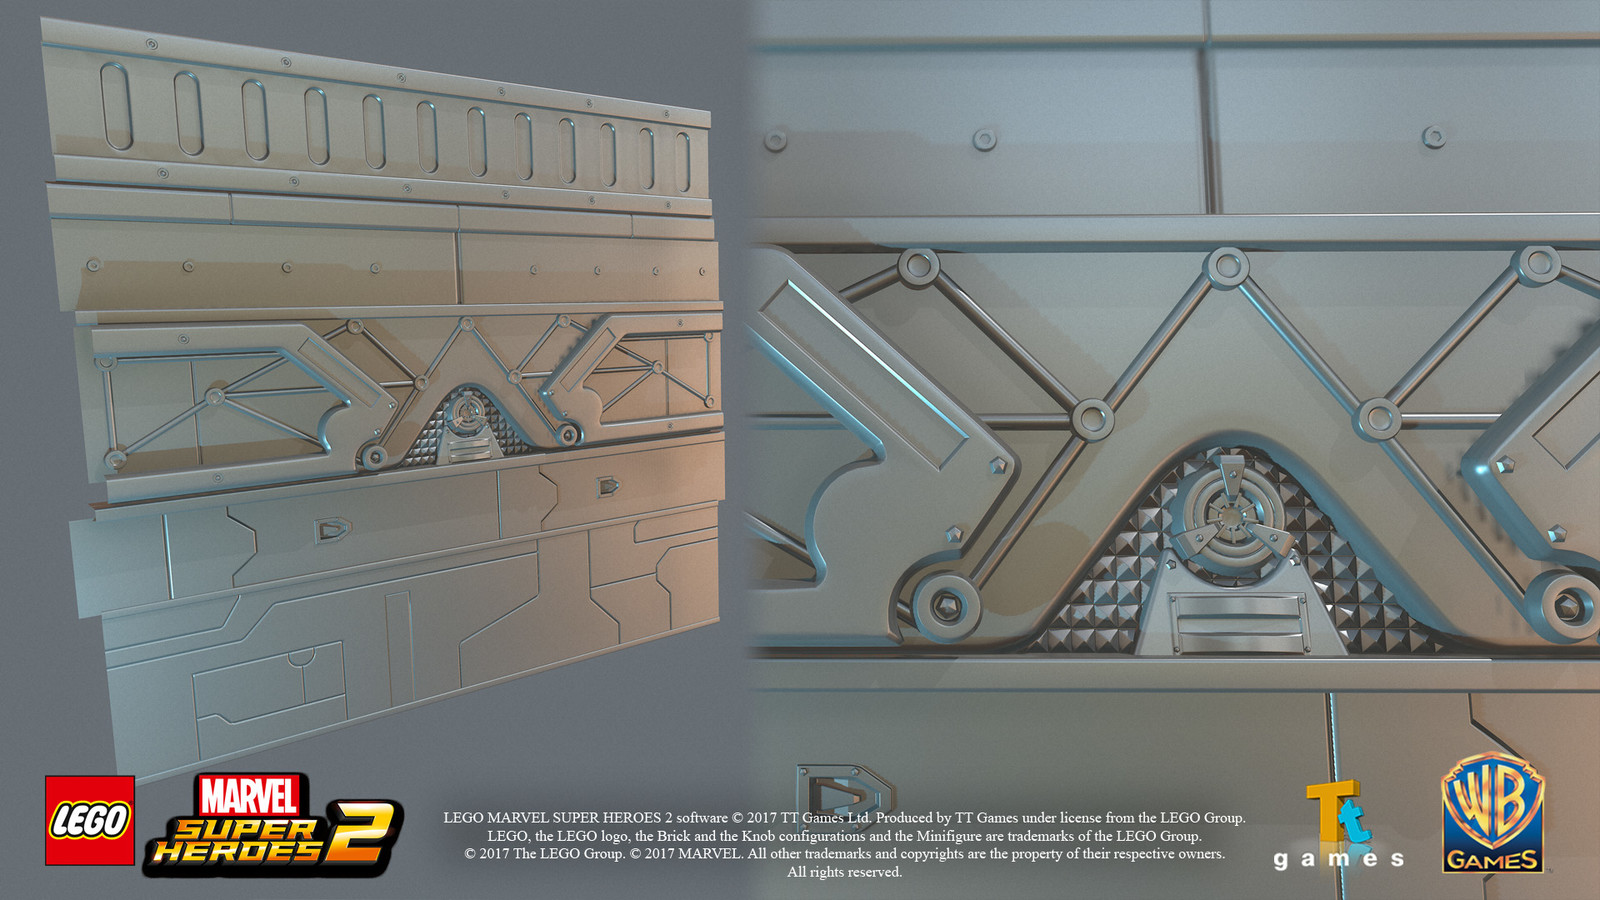 Hi-res panels for texture bake